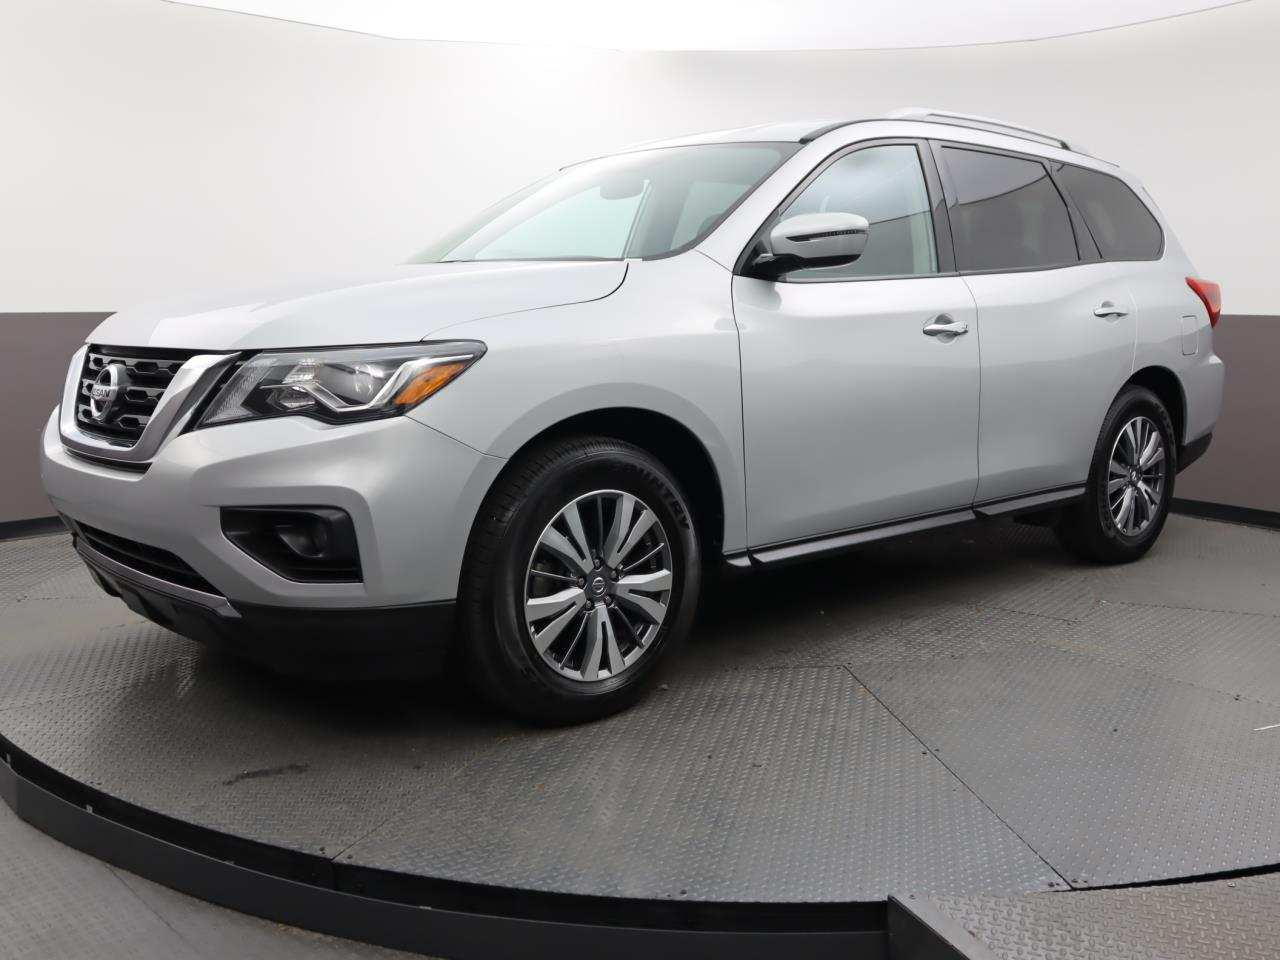 Used NISSAN PATHFINDER 2019 MARGATE SV